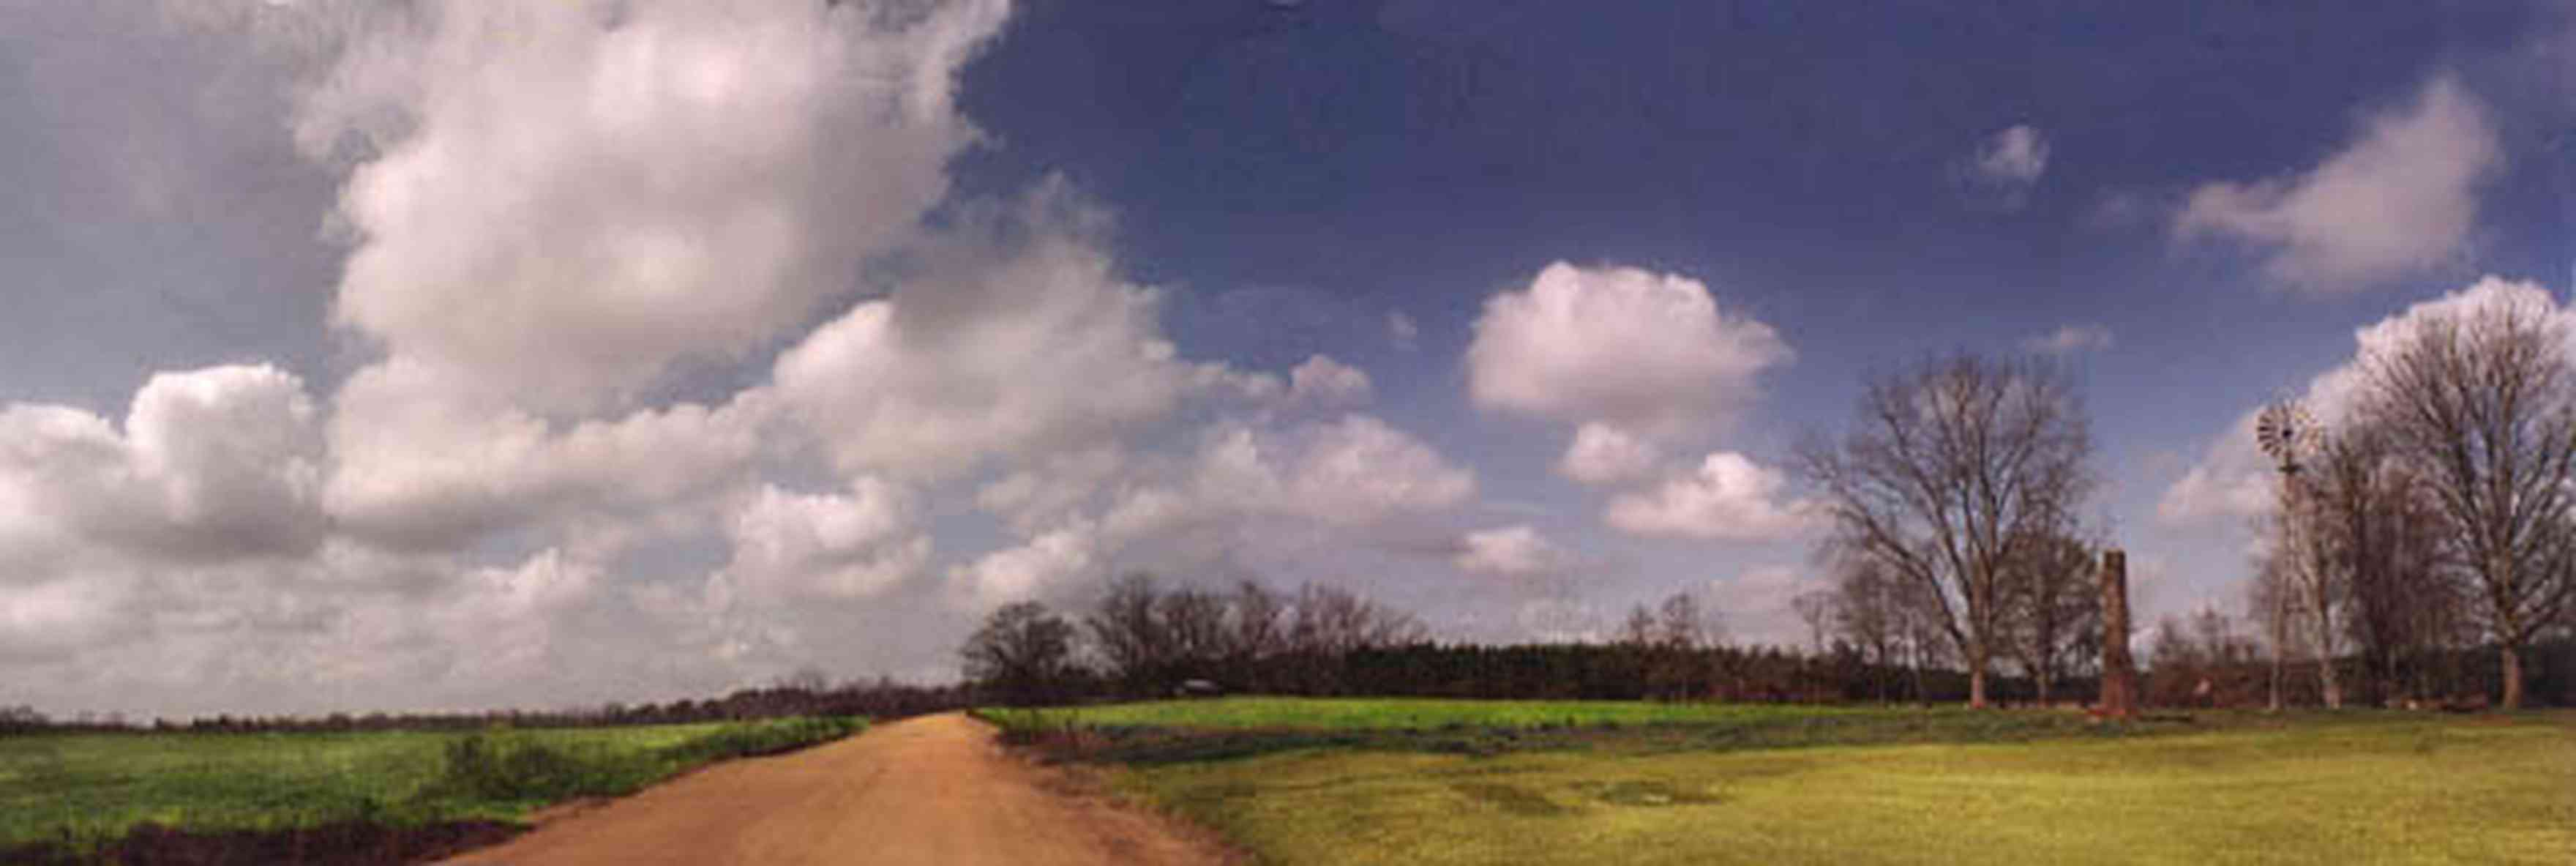 McDavid:-Abandoned-Farm_01.jpg:  country road, dirt road, red clay road, windmill, chimney, cumulus clouds, fields, farmer